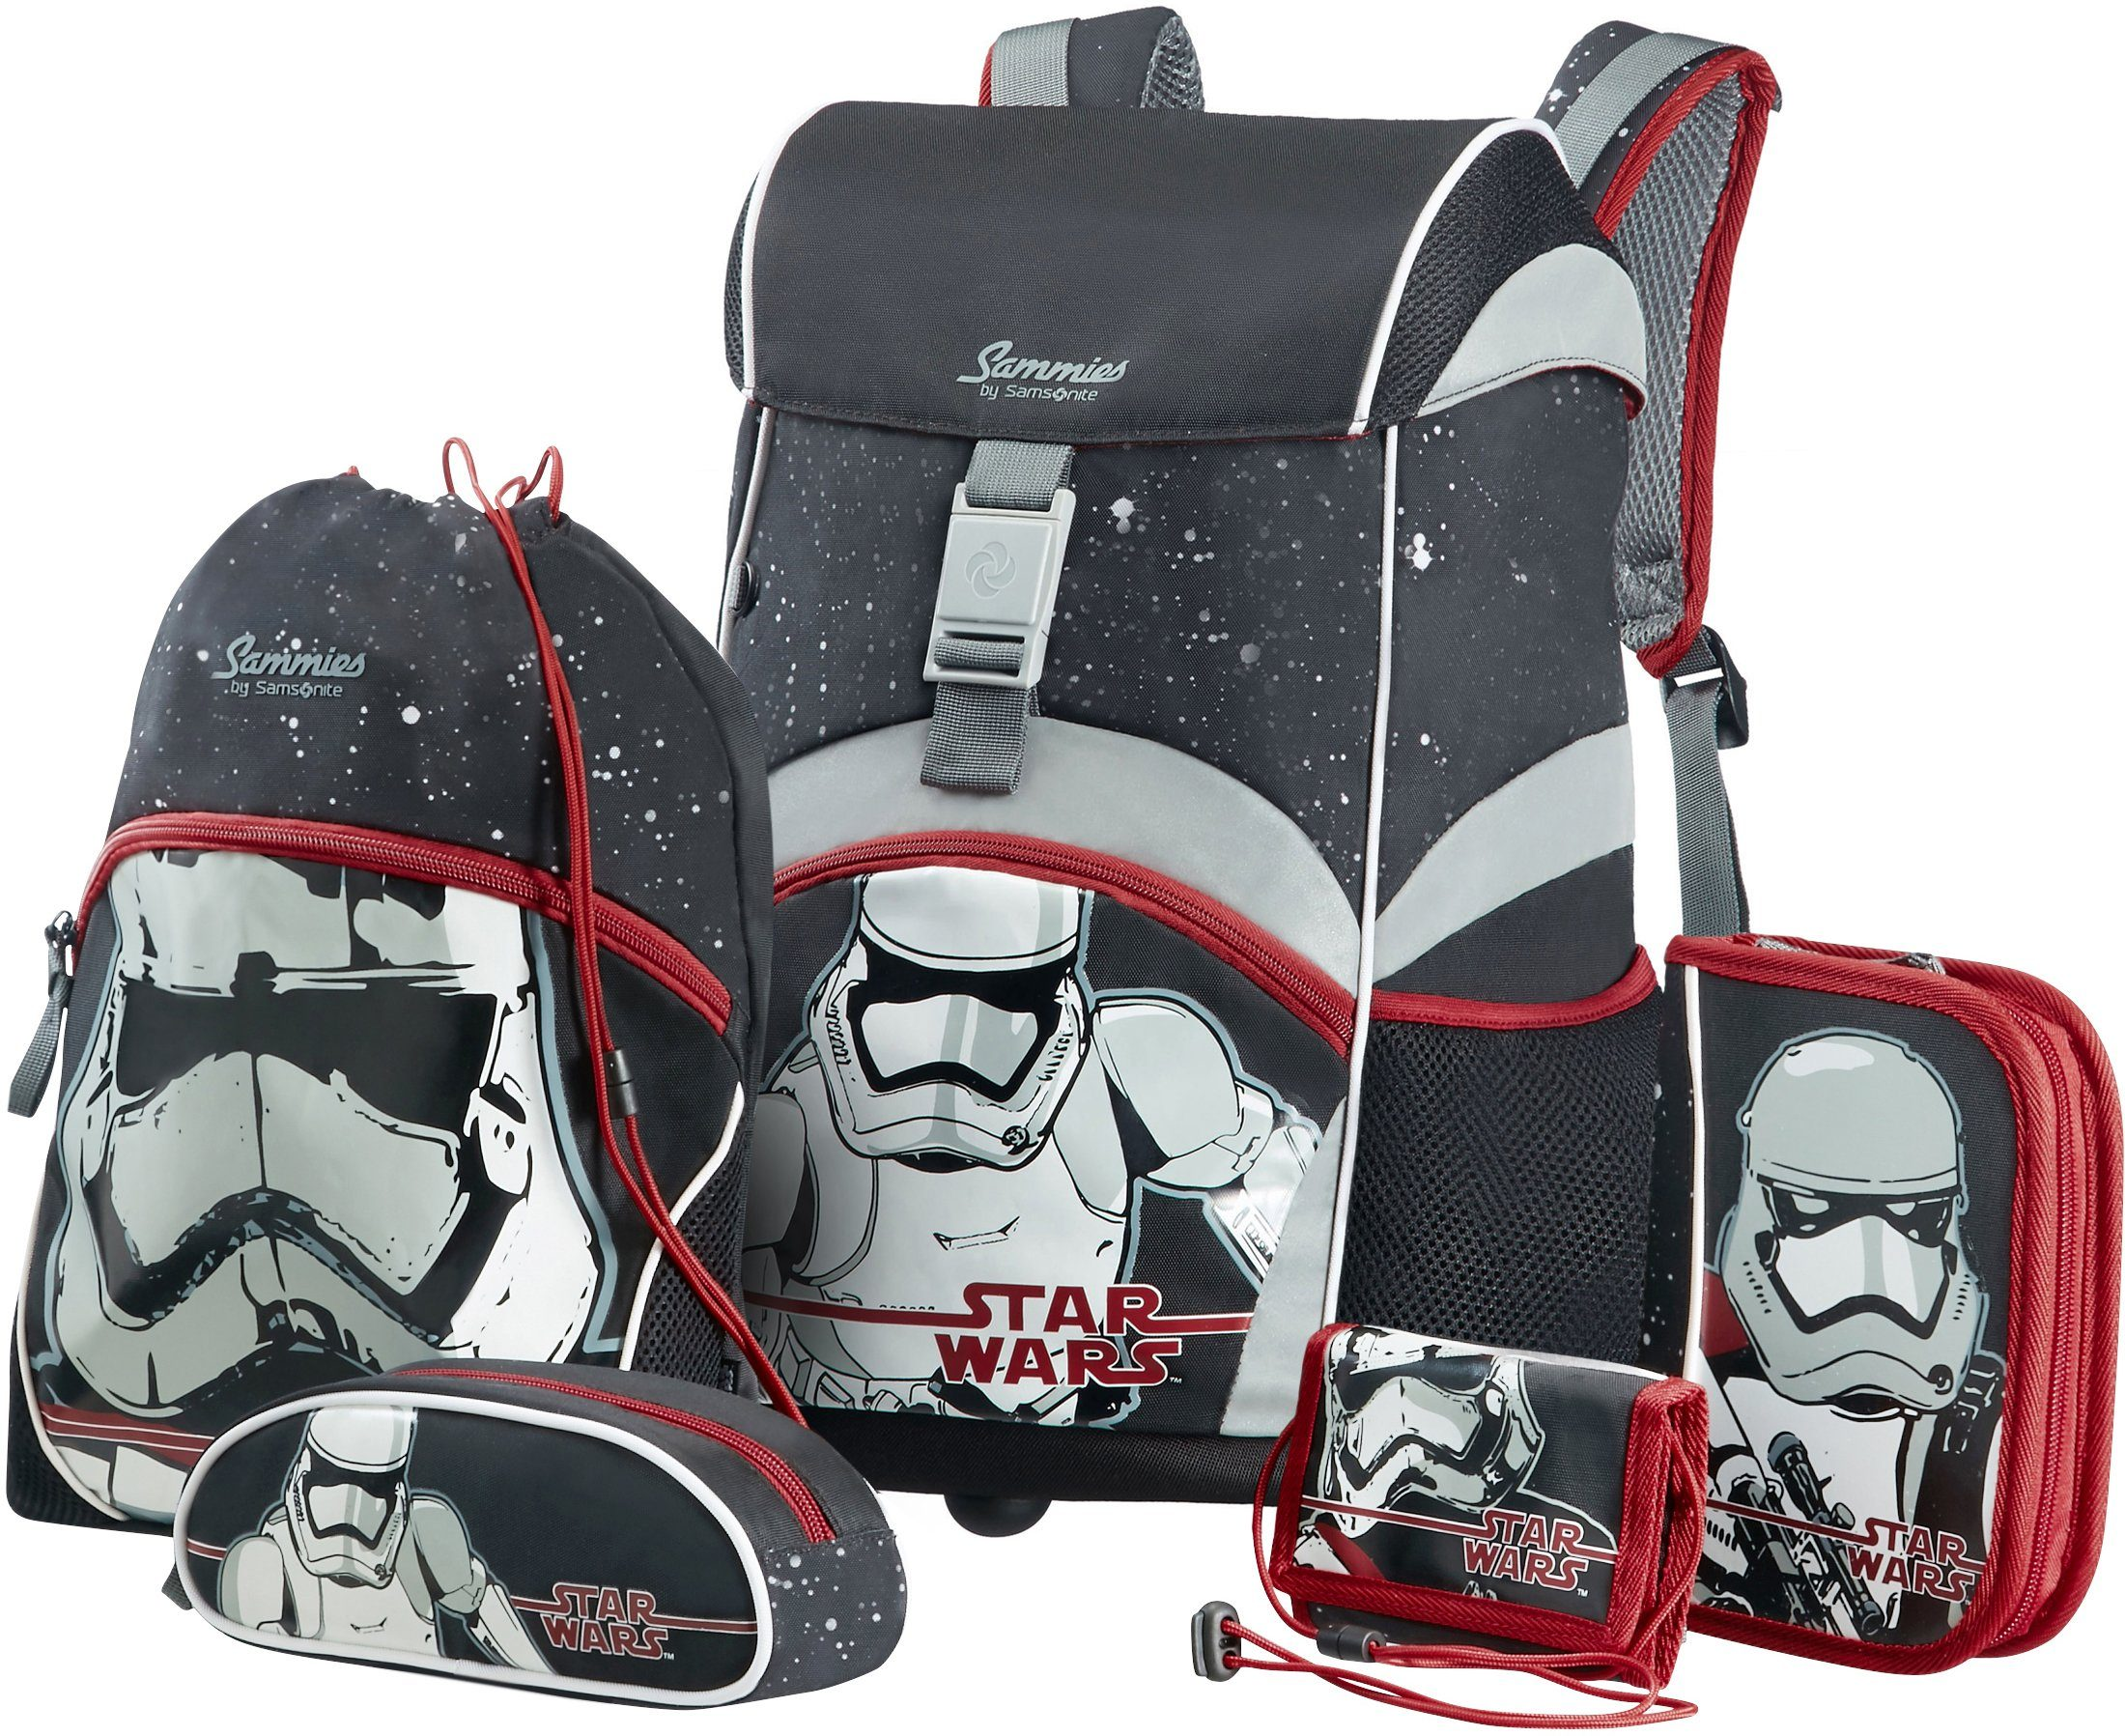 Samsonite Schulranzen Set, »Sammies by Samsonite Disney Star Wars« (5tlg.)